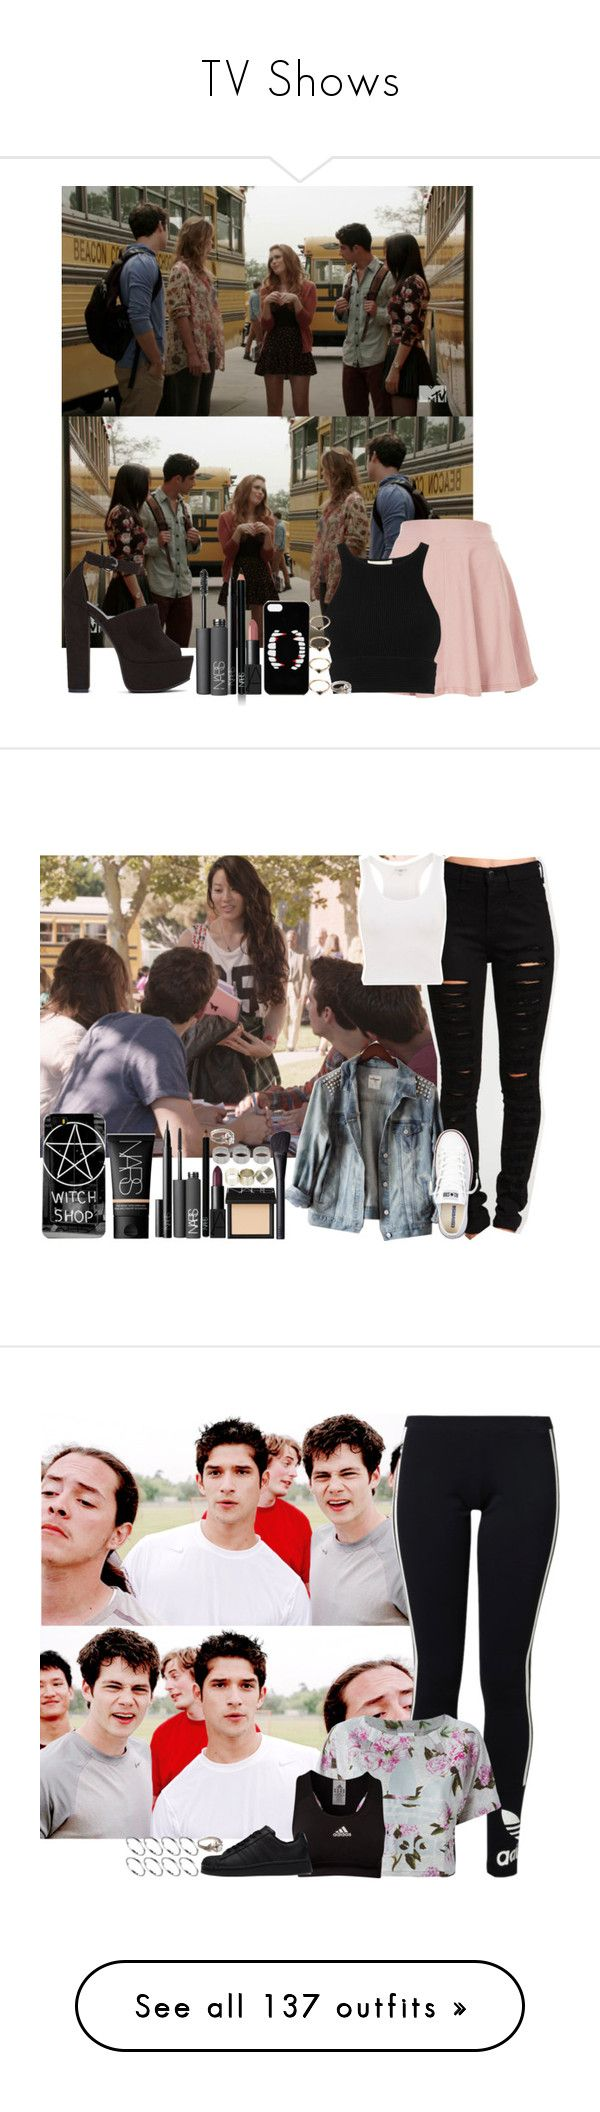 """""""TV Shows"""" by assia-mouaqk ❤ liked on Polyvore featuring NARS Cosmetics, Topshop, Shoe Cult, Jonathan Simkhai, ASOS, Forever 21, 25, Converse, Neon Hart and adidas Originals"""